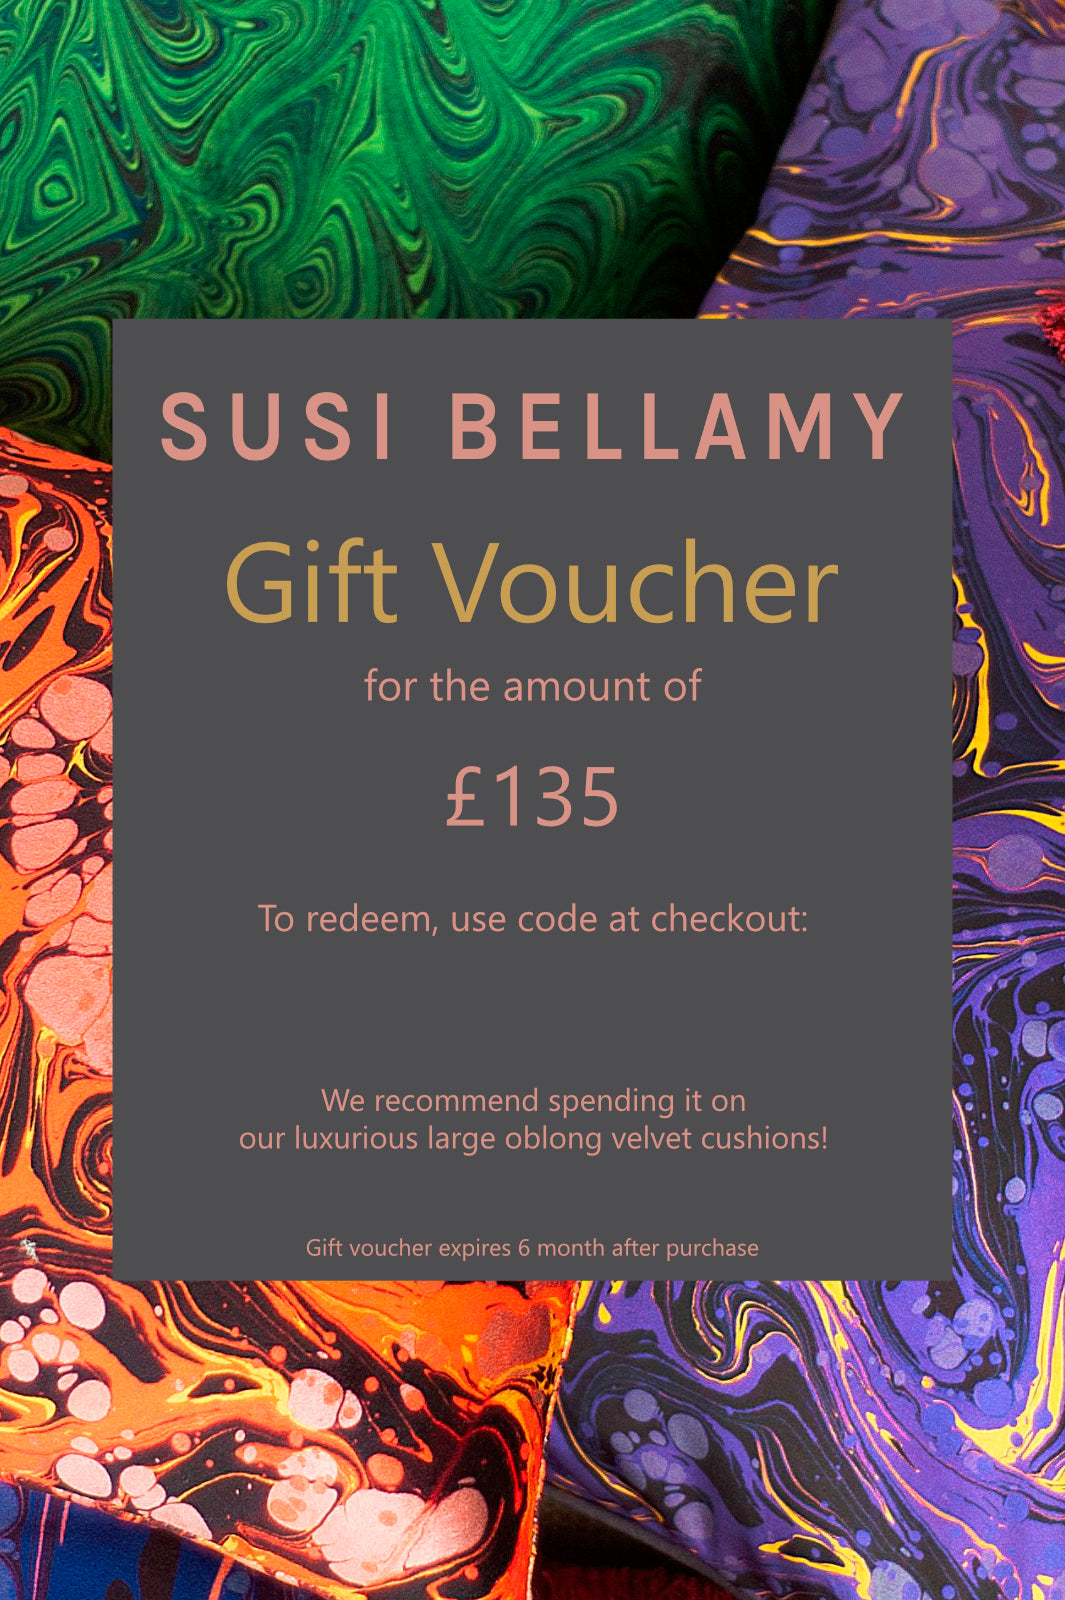 Susi Bellamy Gift Voucher for £135